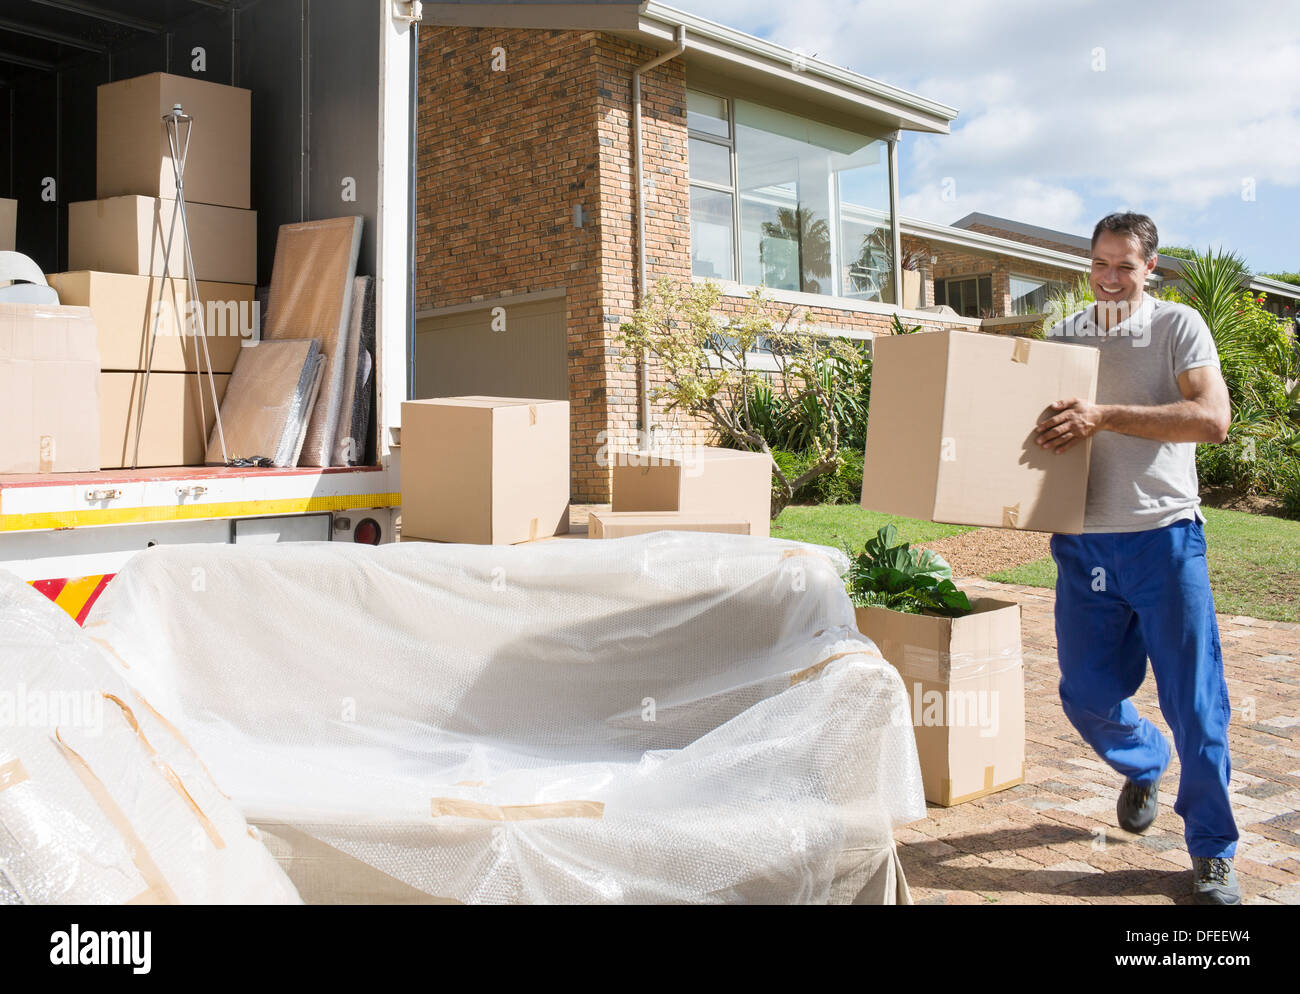 Man carrying cardboard box to moving van in driveway - Stock Image